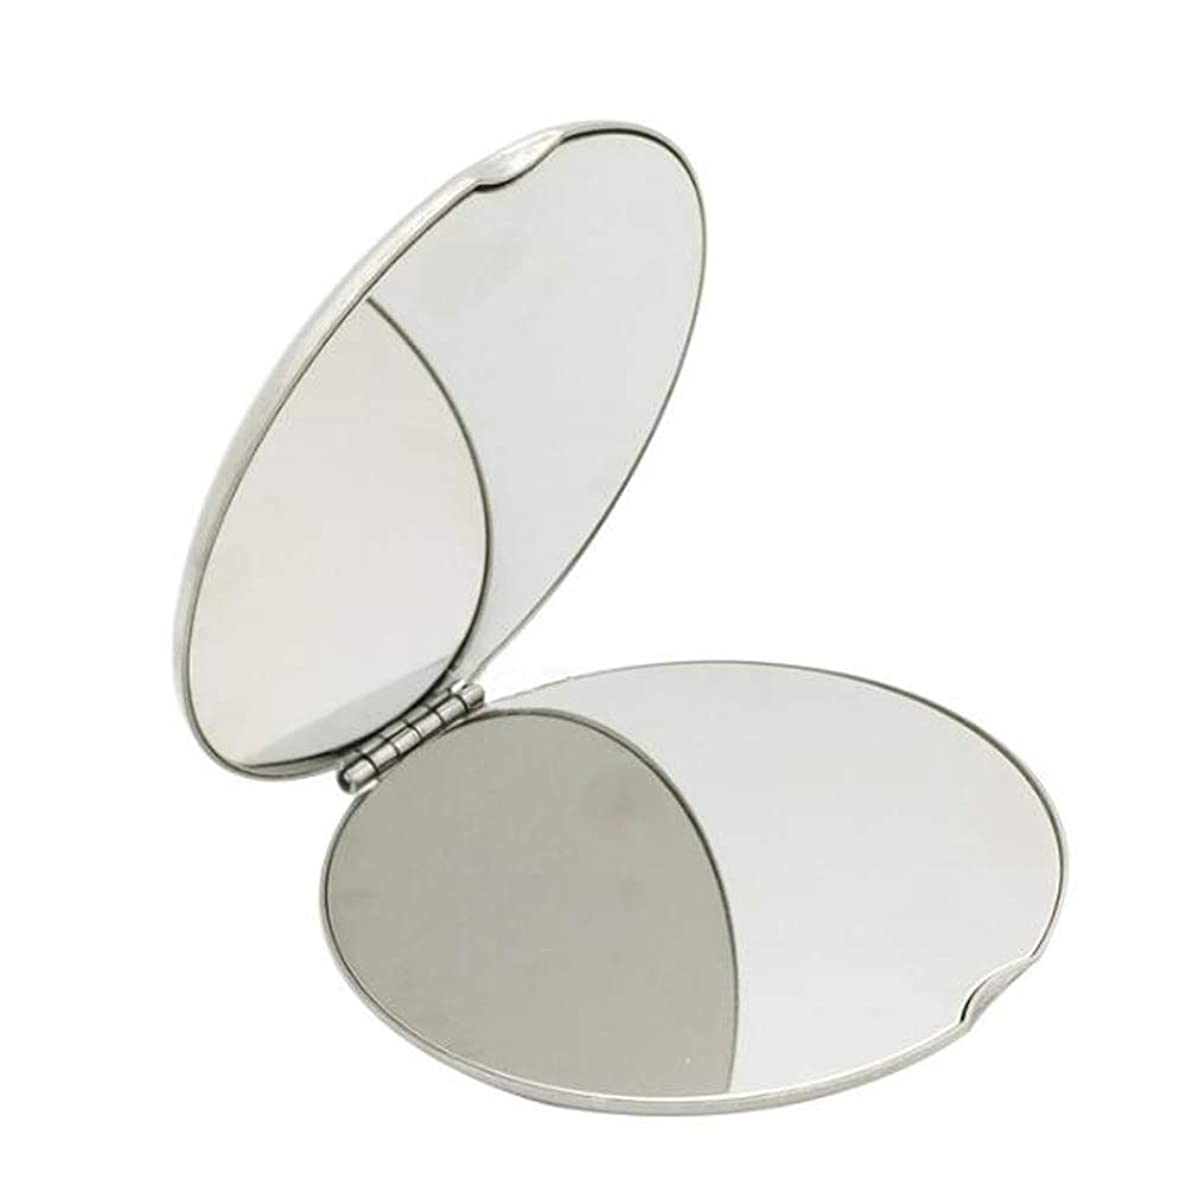 Shatterproof Stainless Steel Ultra Slim Folding Portable Mirror Makeup Unbreakable Camping Mirror For Personal Use,Travelling, Emergency Signaling (Round:6.56.5CM)